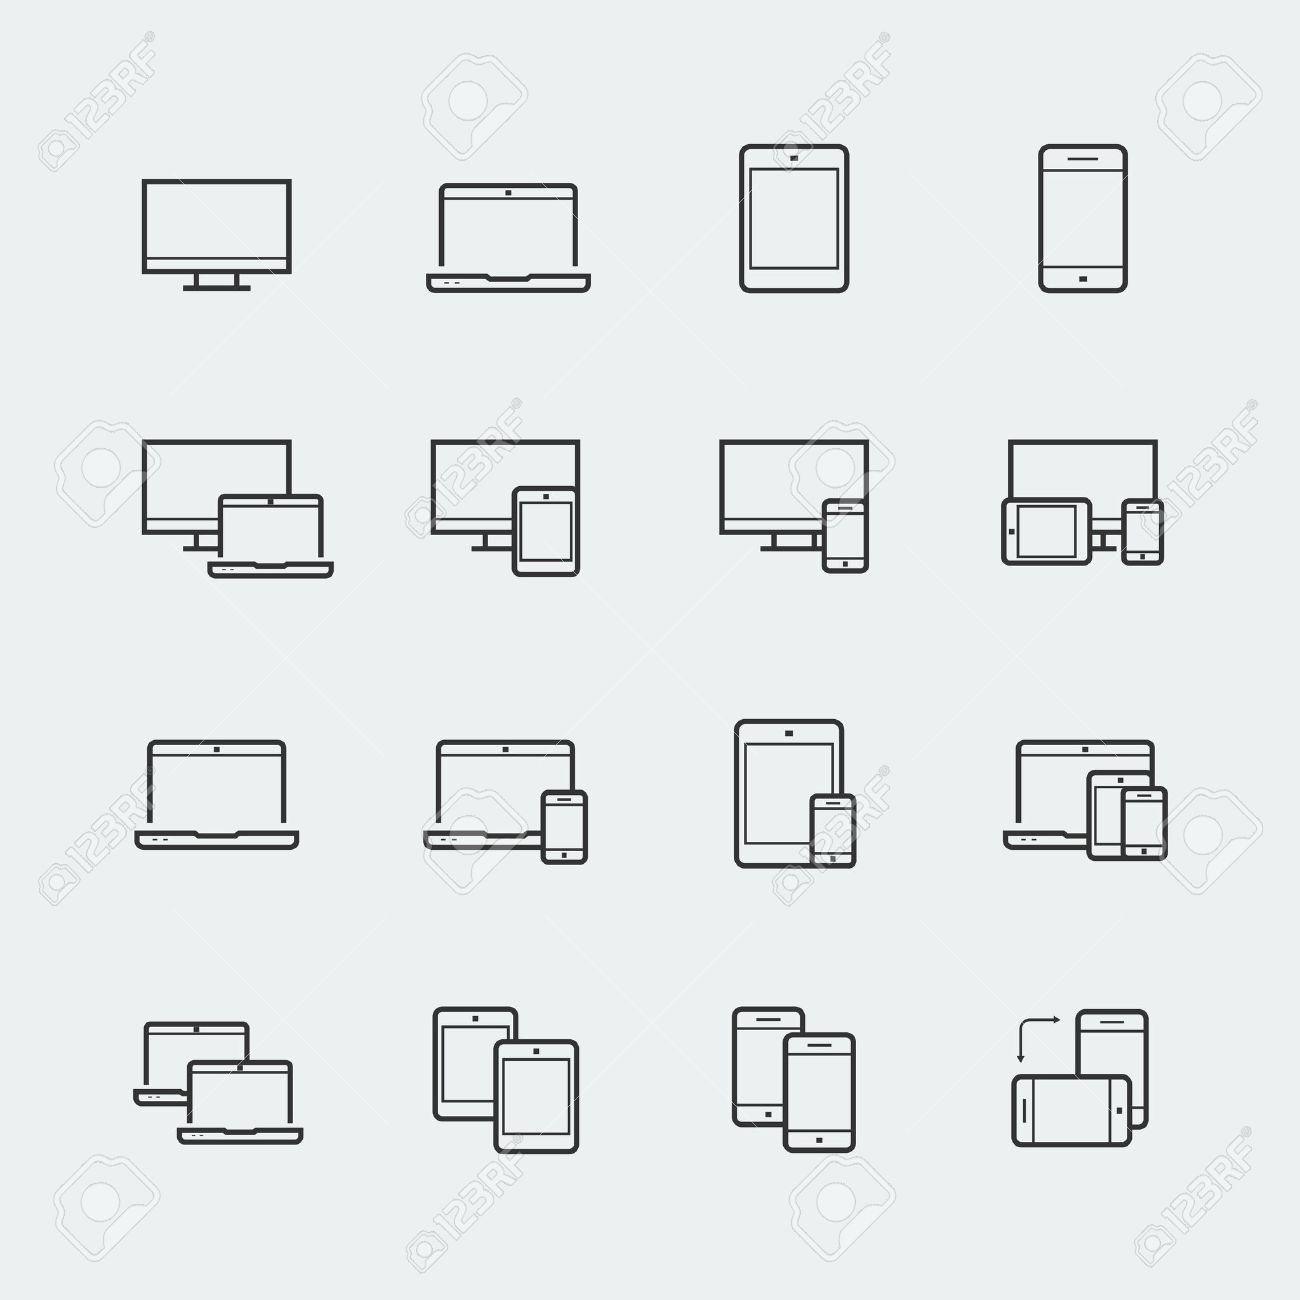 Responsive web design icons for computer monitor, smartphone, tablet and laptop - 43122295